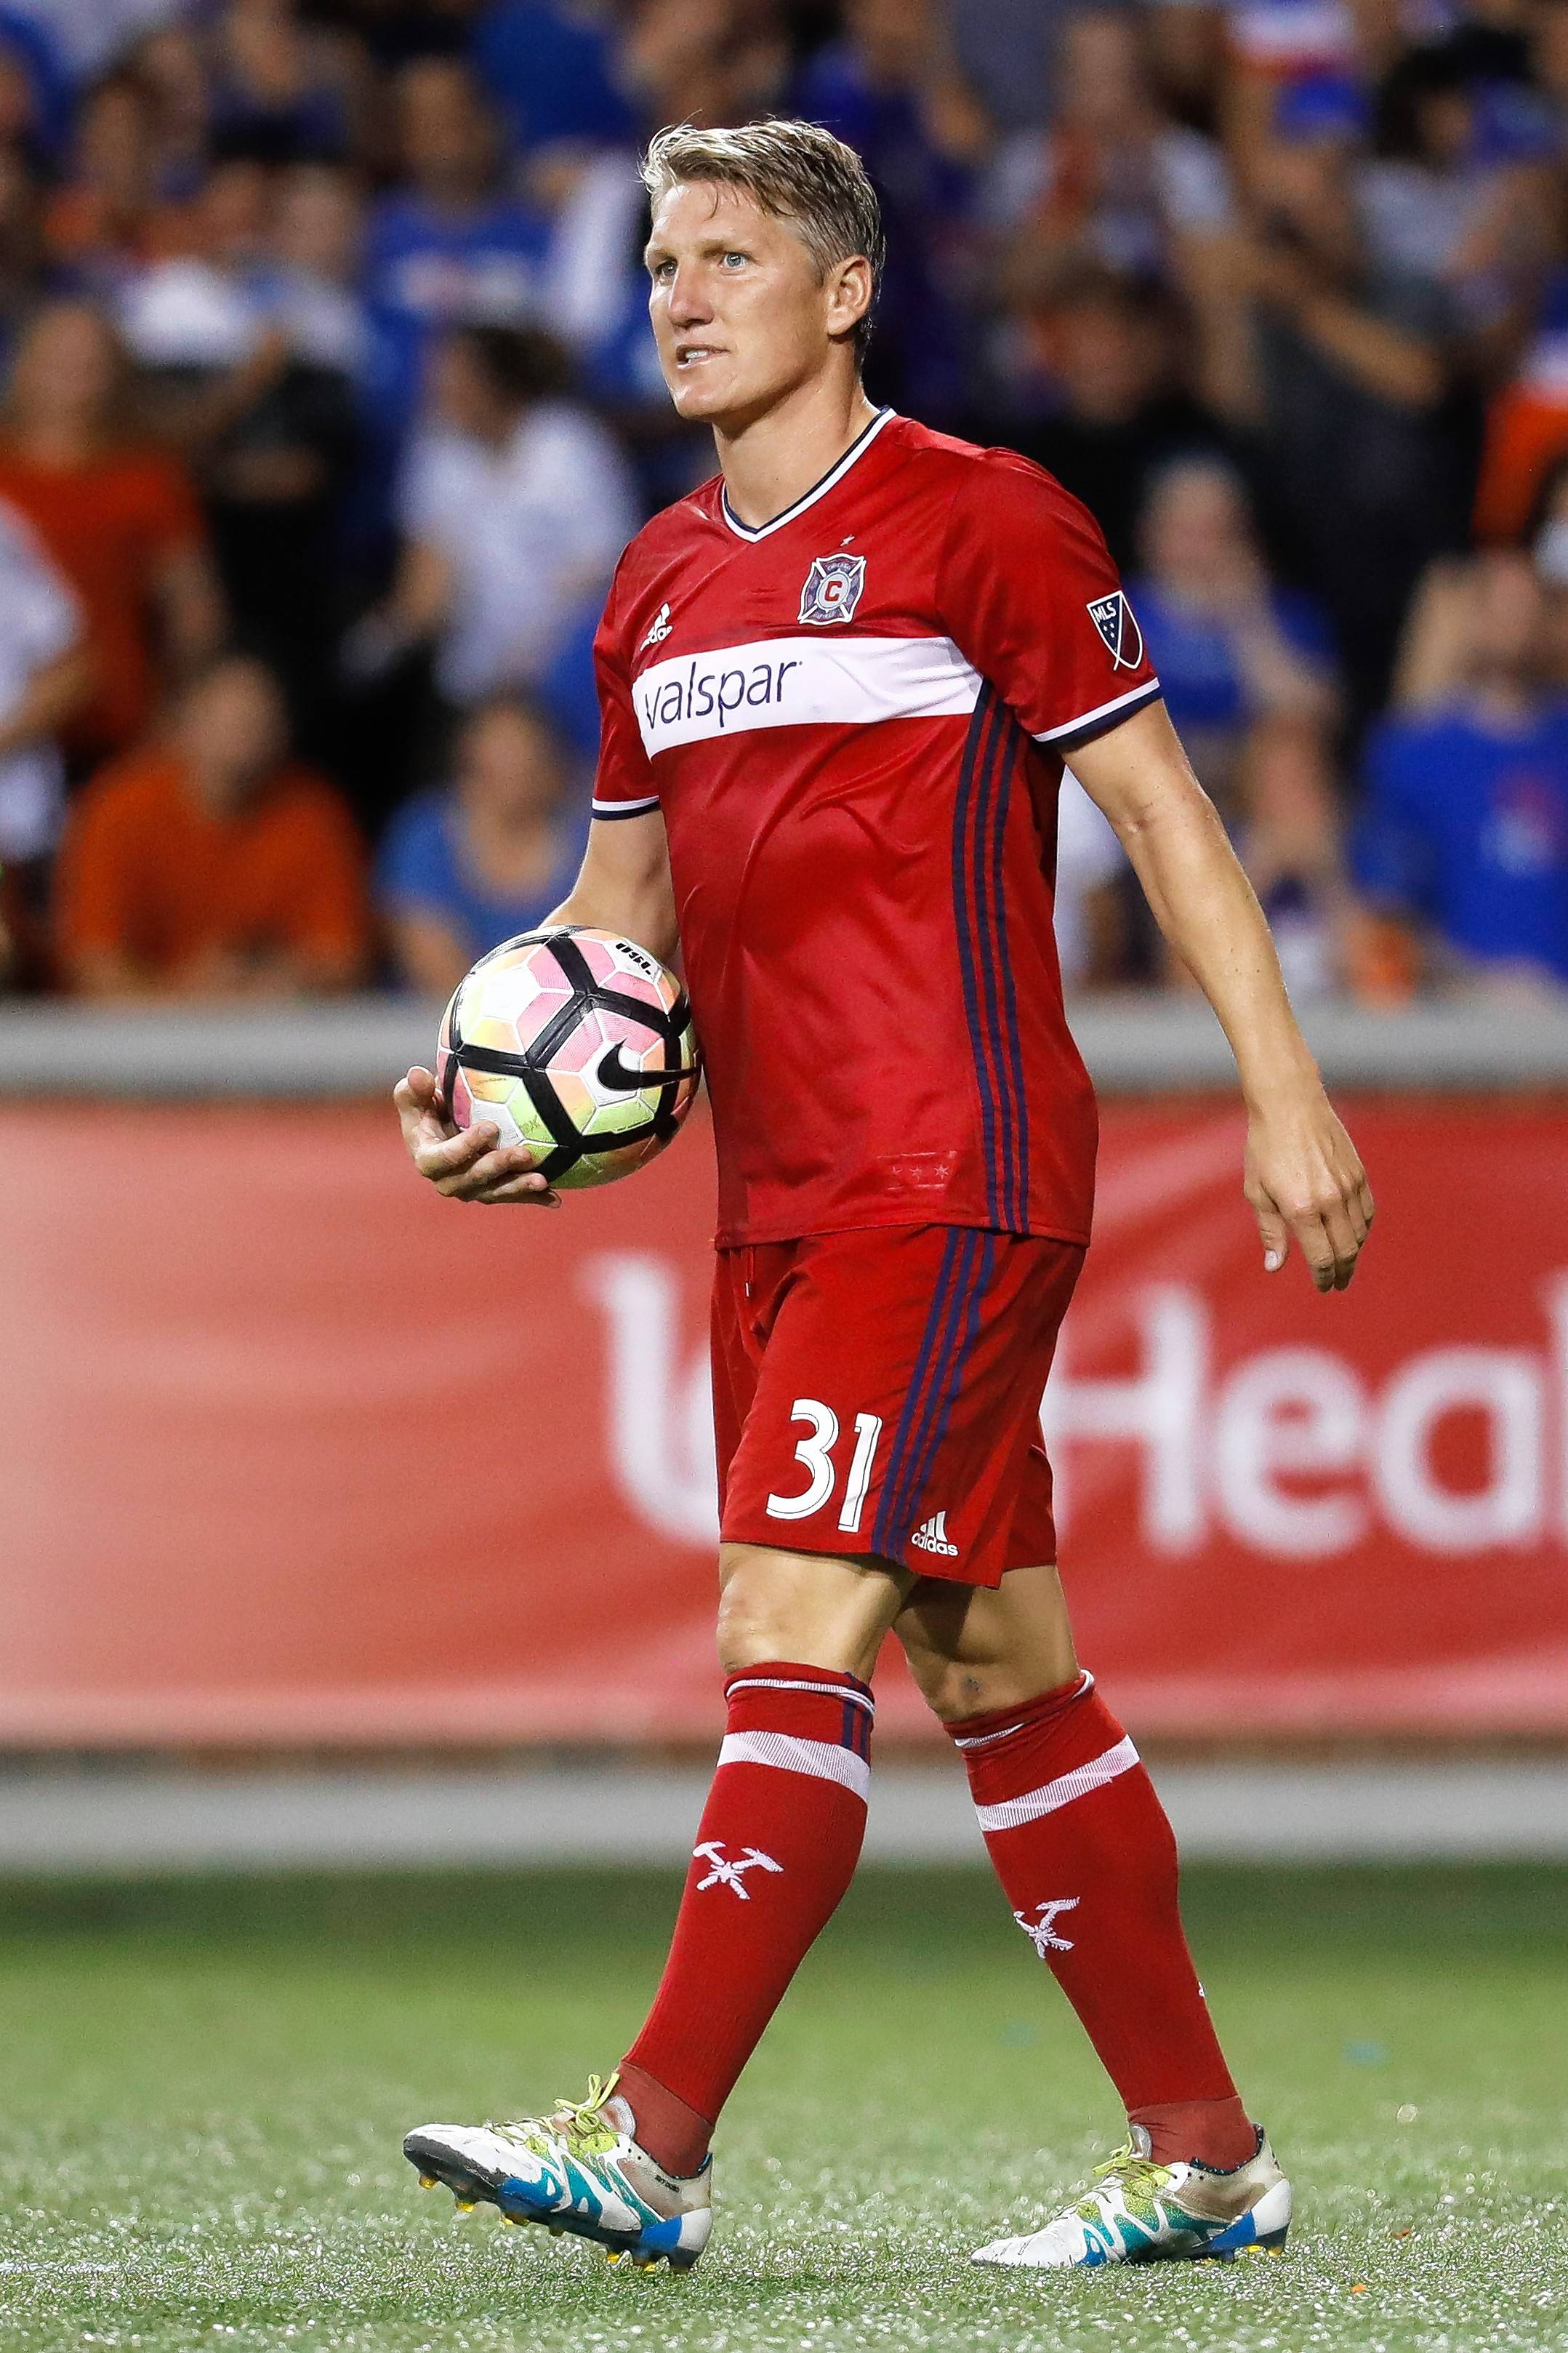 Midfielder Bastian Schweinsteiger, who turns 34 in August, had 3 goals and 6 assists in 23 starts for the Chicago Fire last season. He has agreed to return to the Fire for the 2018 MLS season.